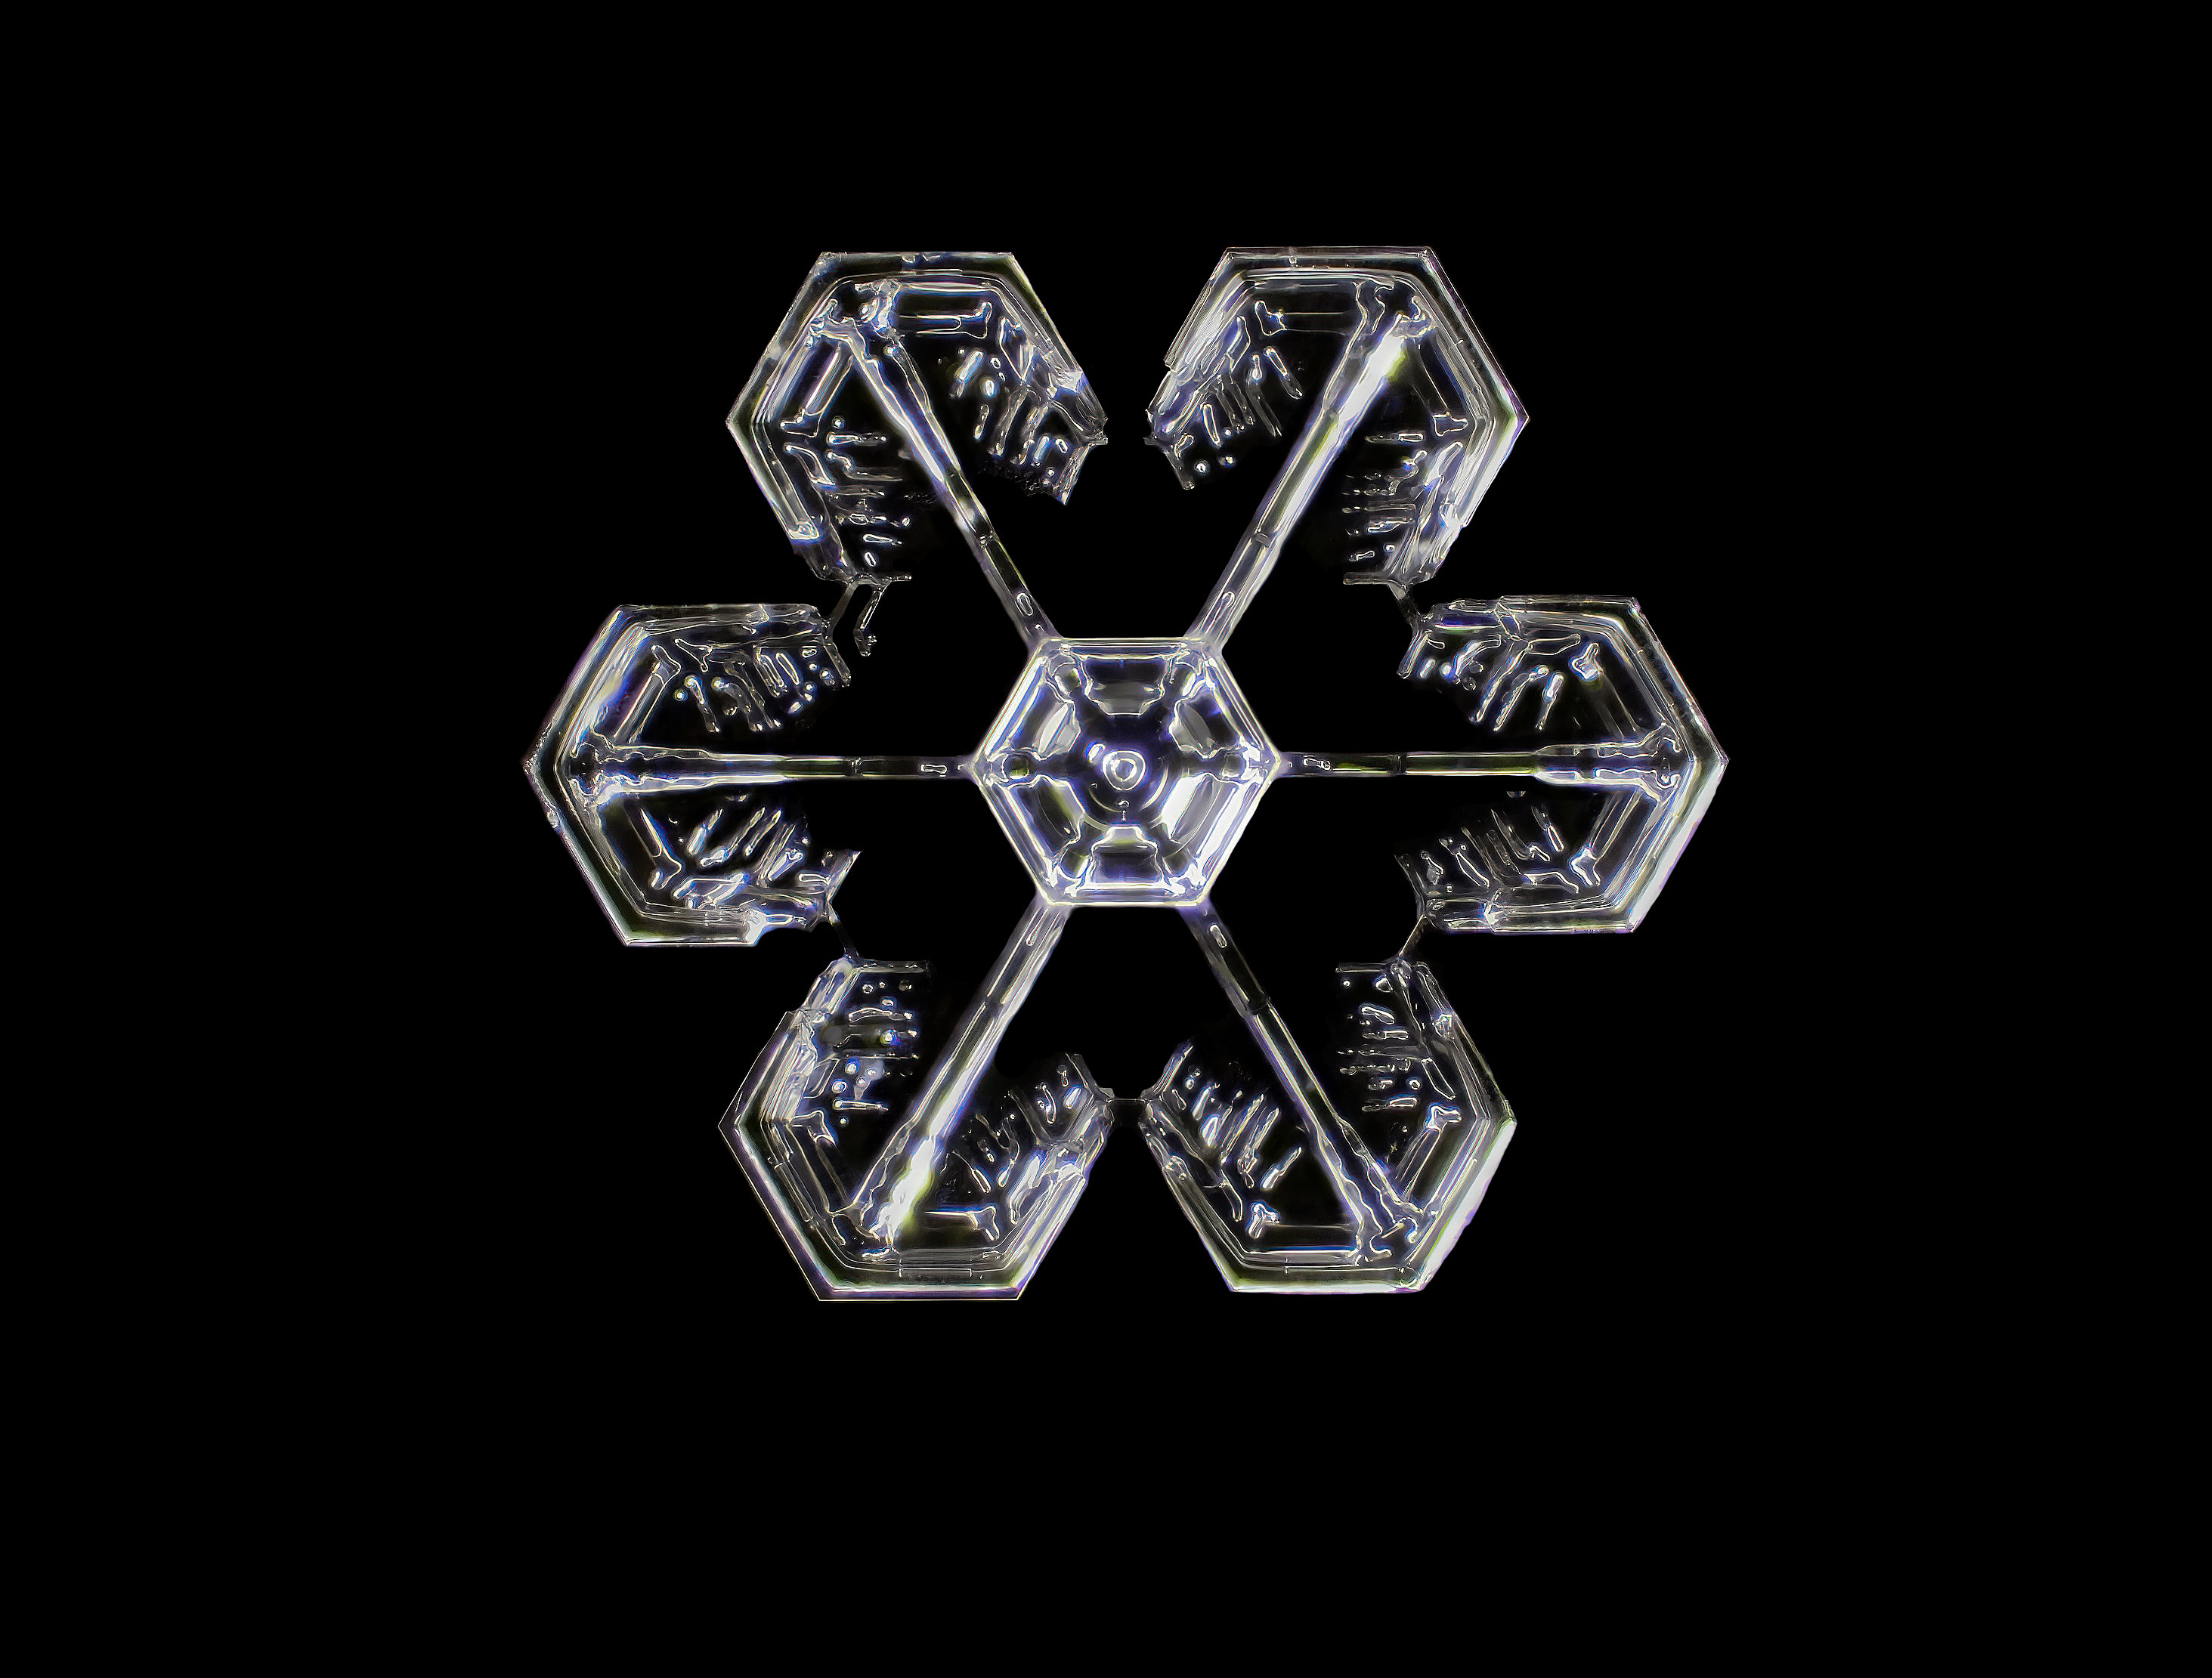 A snowflake on a black background, magnified many times